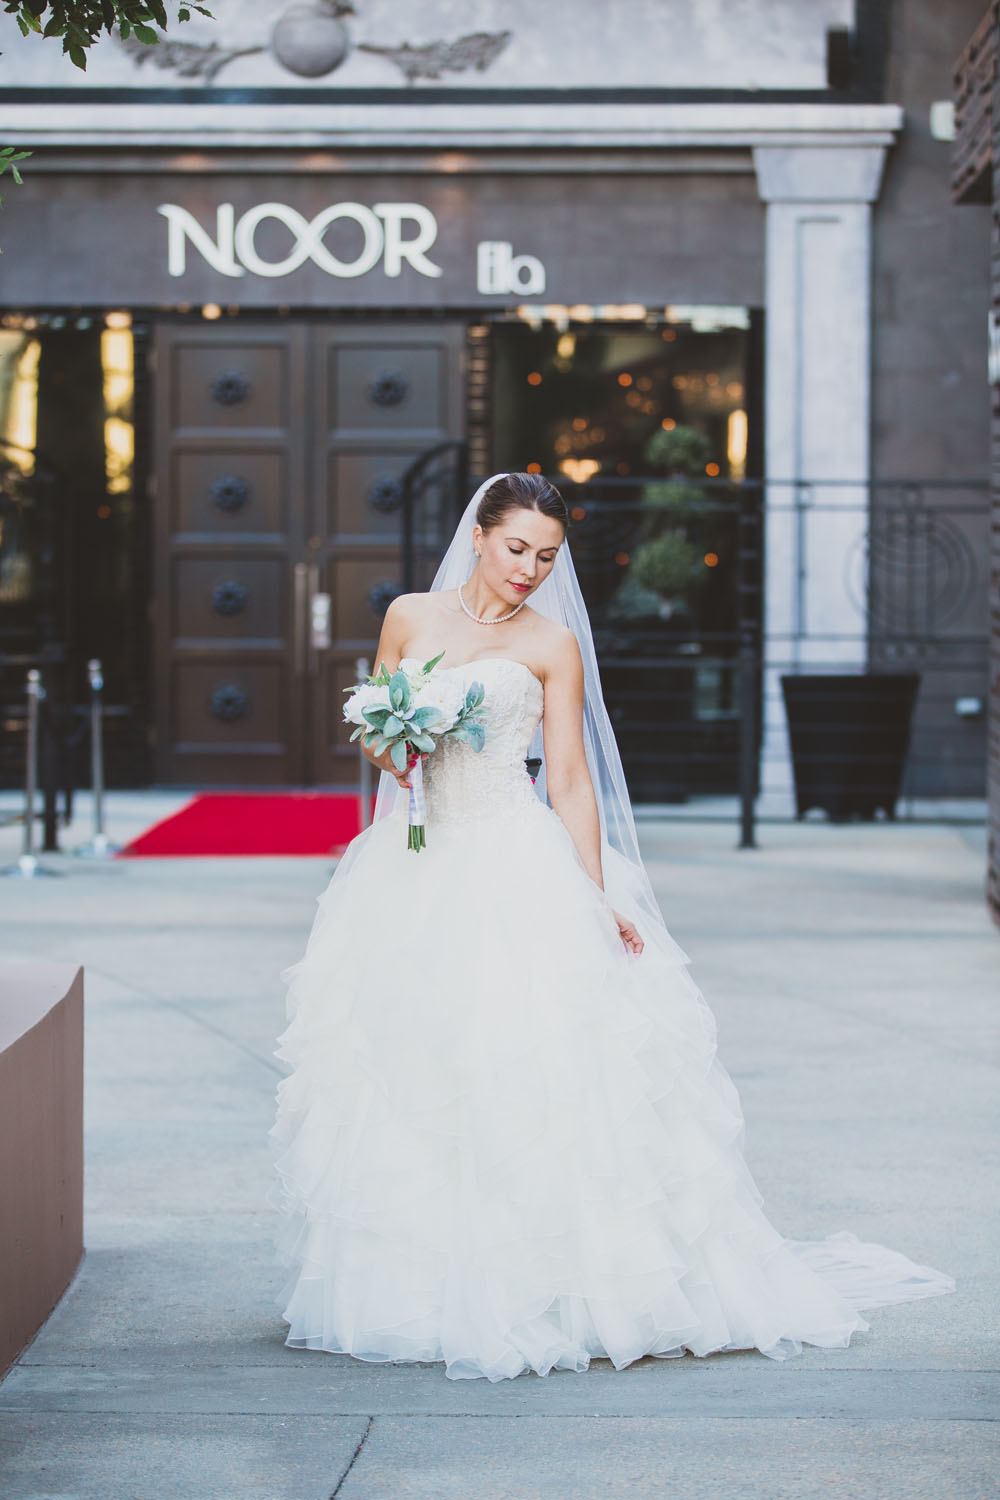 Bride at Los Angeles Wedding Venue NOOR